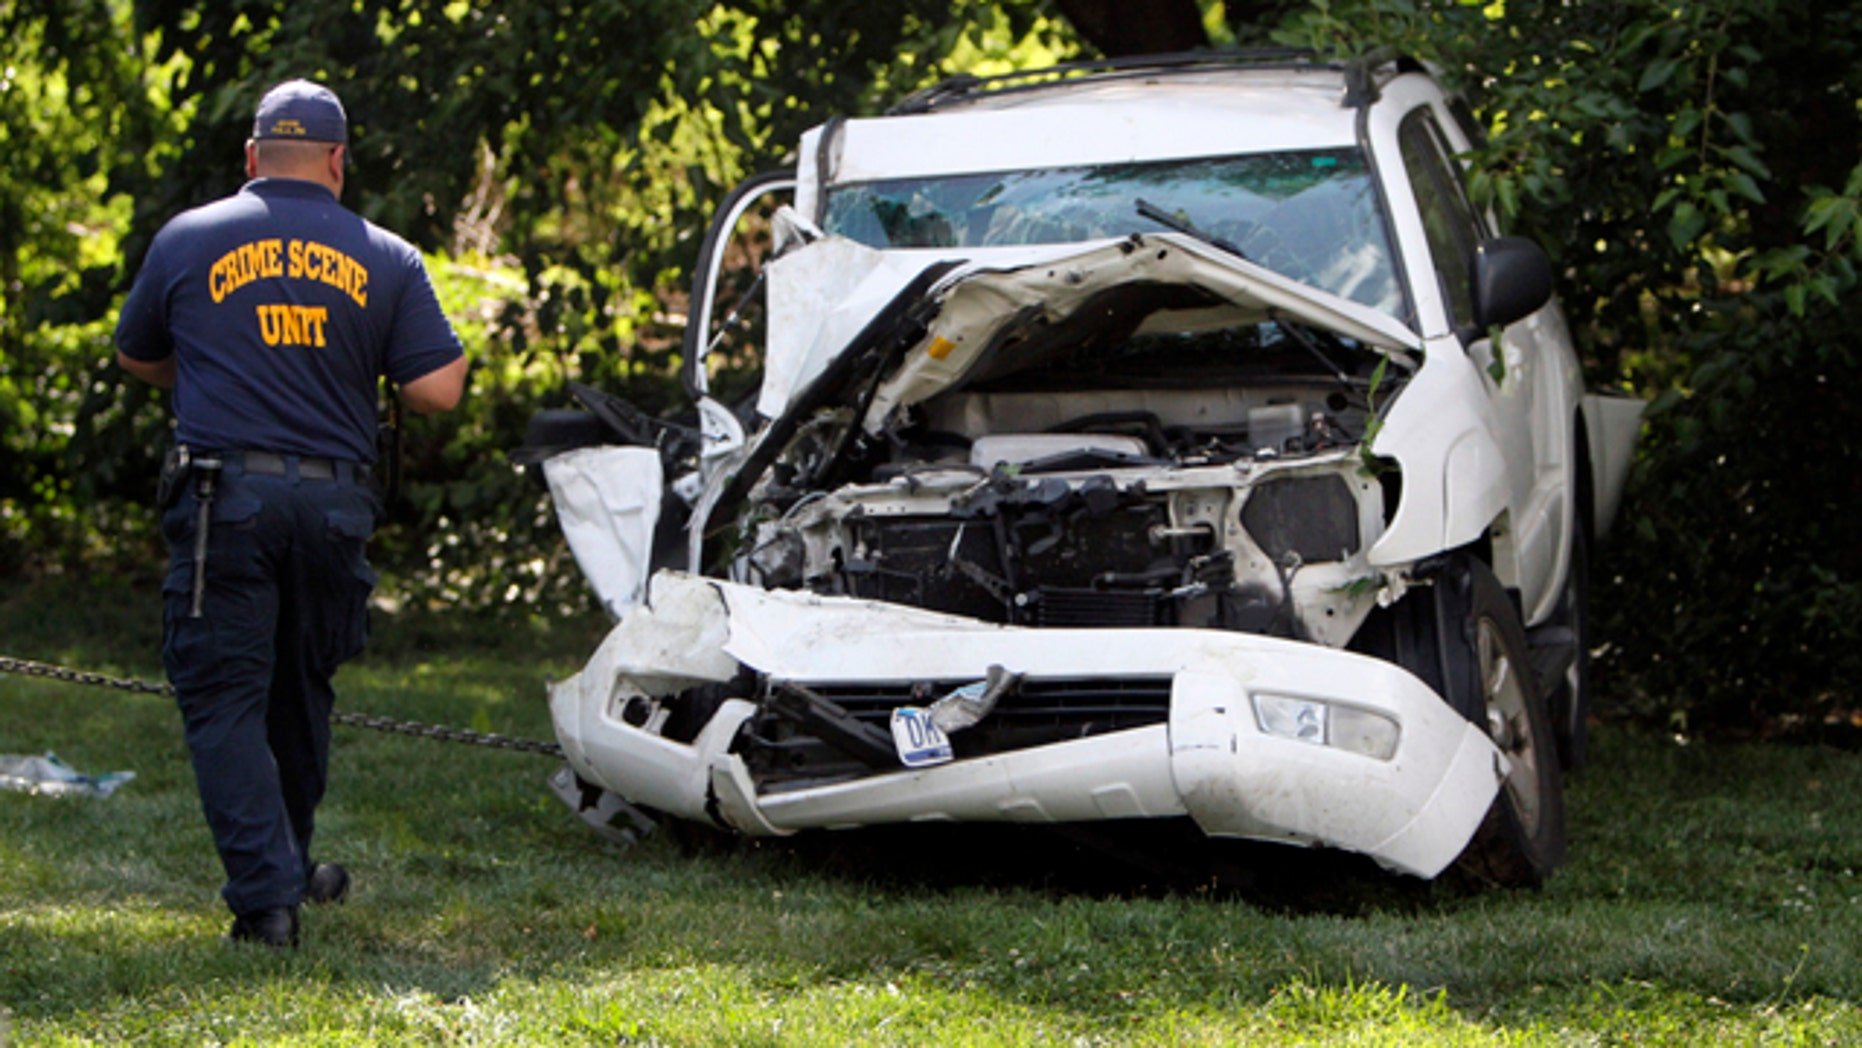 July 25, 2014: An investigator examines a heavily damaged SUV before it is towed from the scene of a fatal accident in North Philadelphia. Two children were killed and three people critically injured when a hijacked car lost control and hit a group of people near a fruit stand, according to police. (AP Photo/ Joseph Kaczmarek)